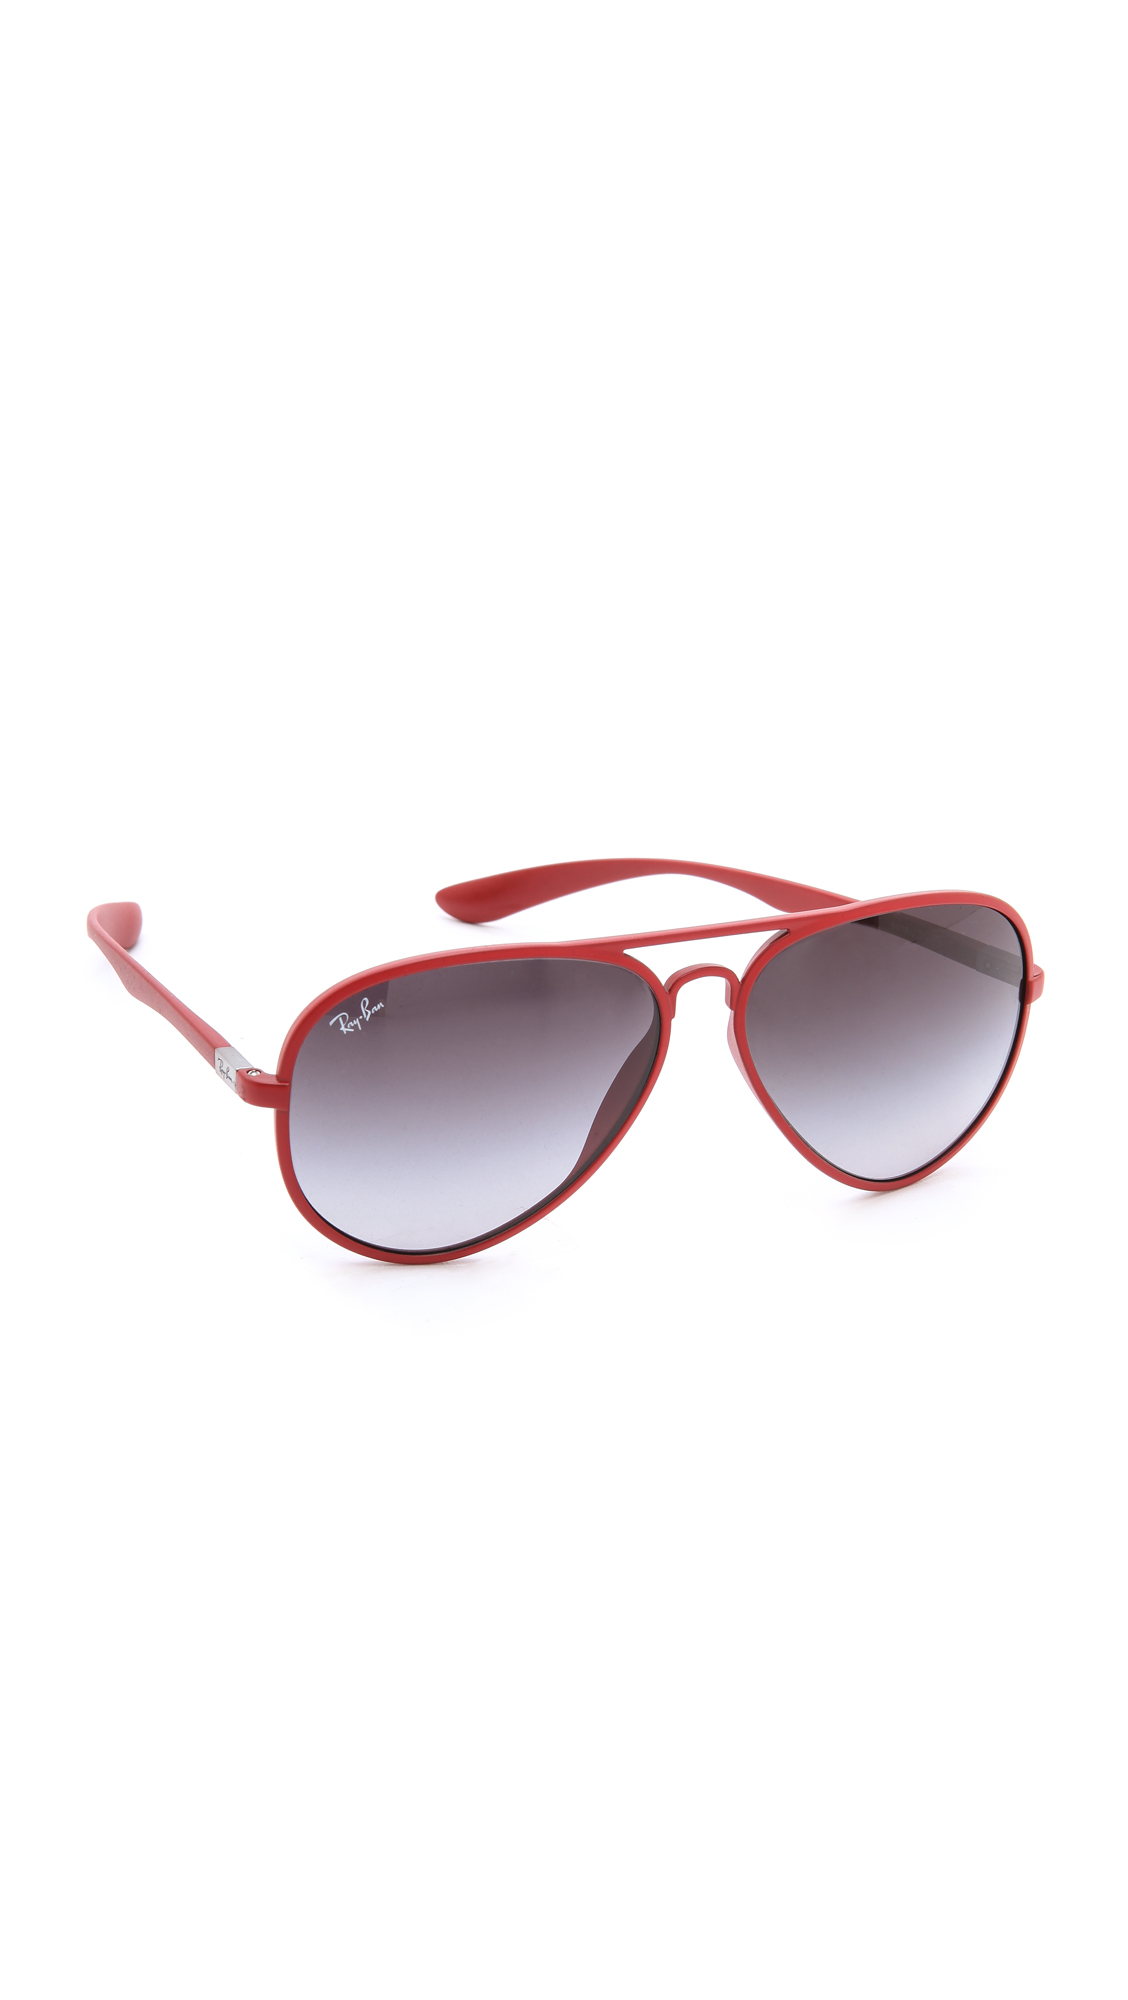 Lyst Ray Ban Aviva Liteforce Sunglasses In Red